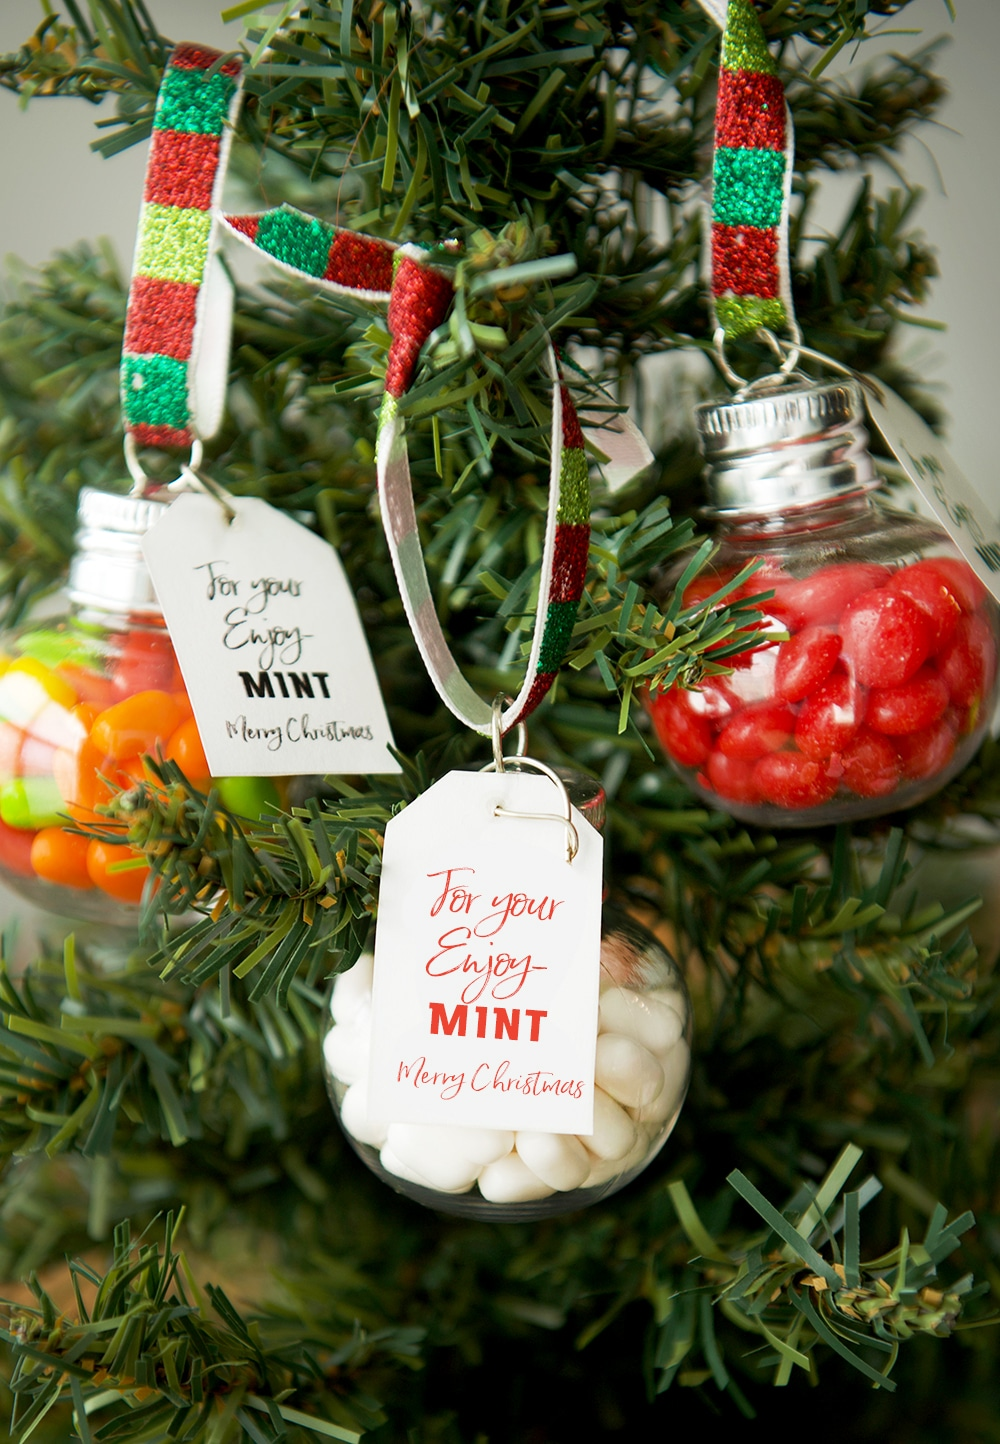 These Mint Filled Ornaments are a simple holiday gift idea you can give to everyone!